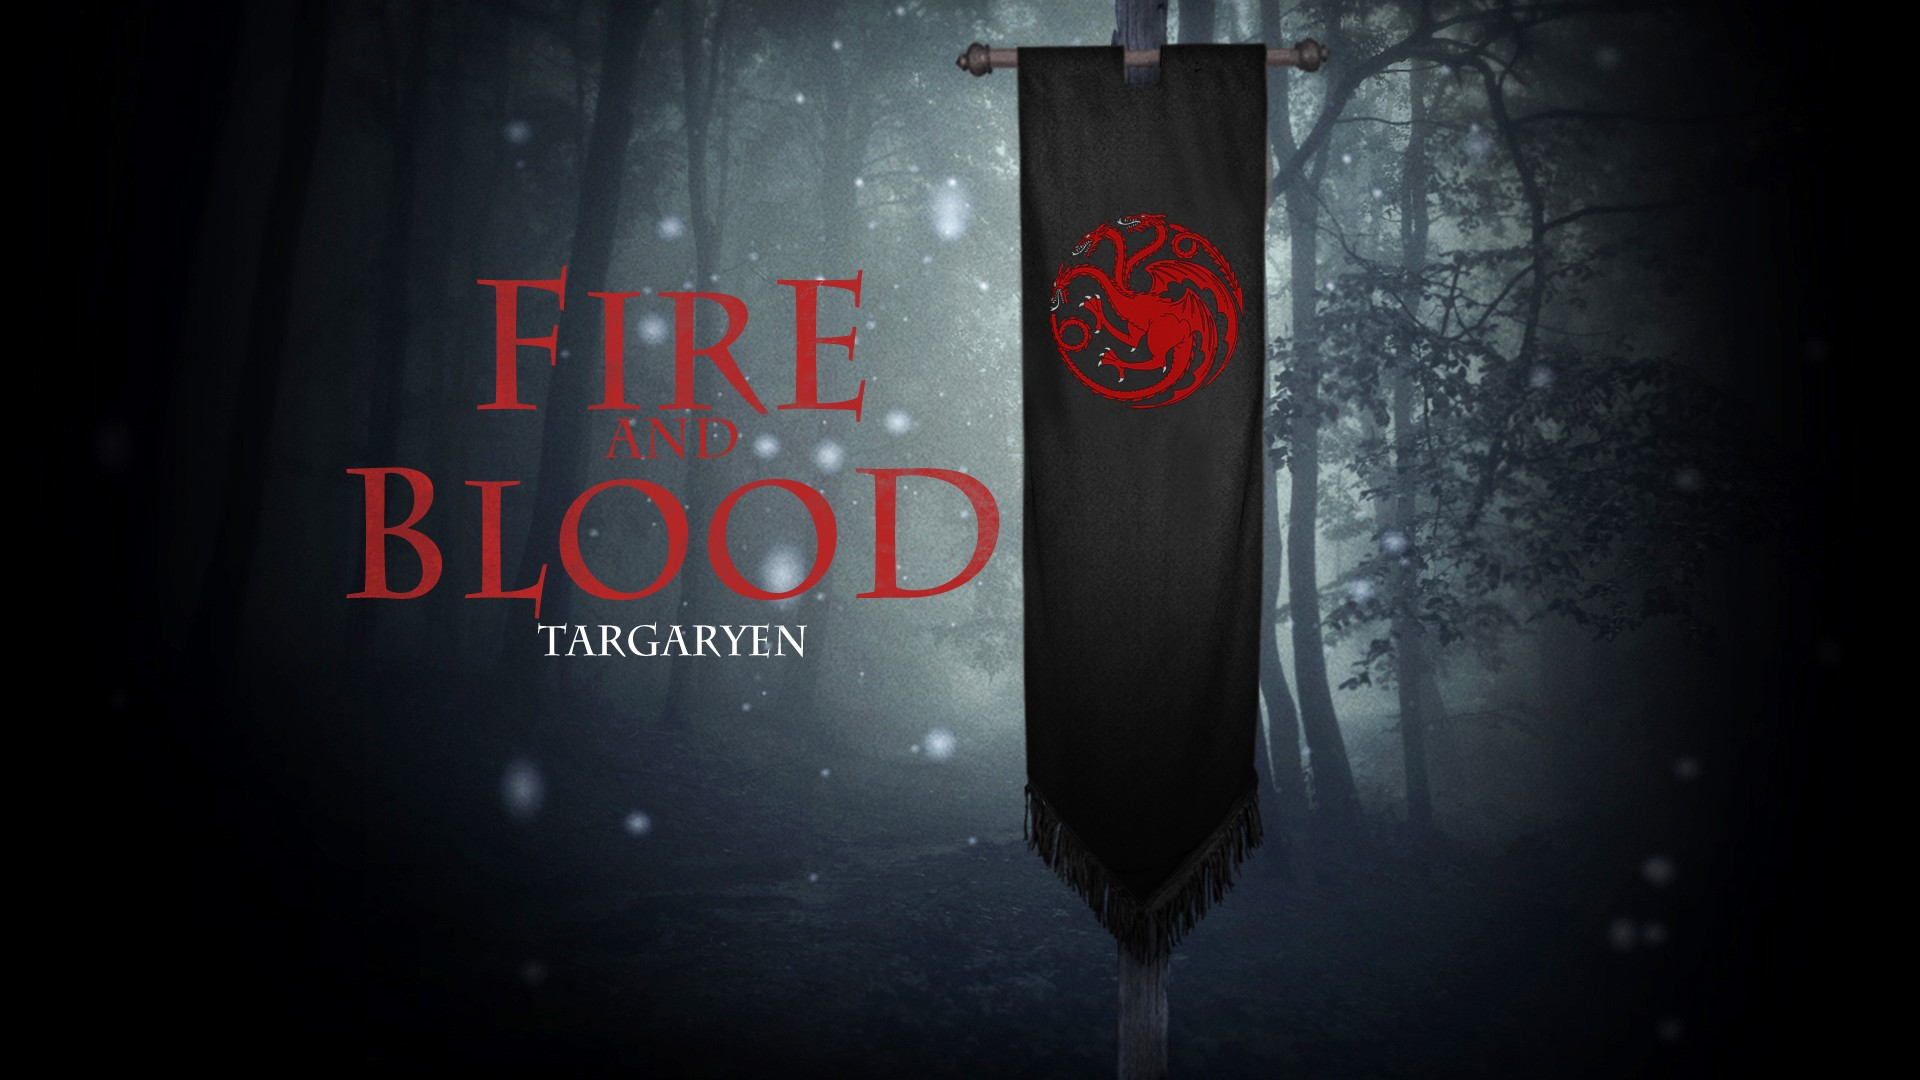 House Targaryen Game Of Thrones Trailer Wallpaper With - Targaryen Iphone Wallpaper Game Of Thrones - HD Wallpaper